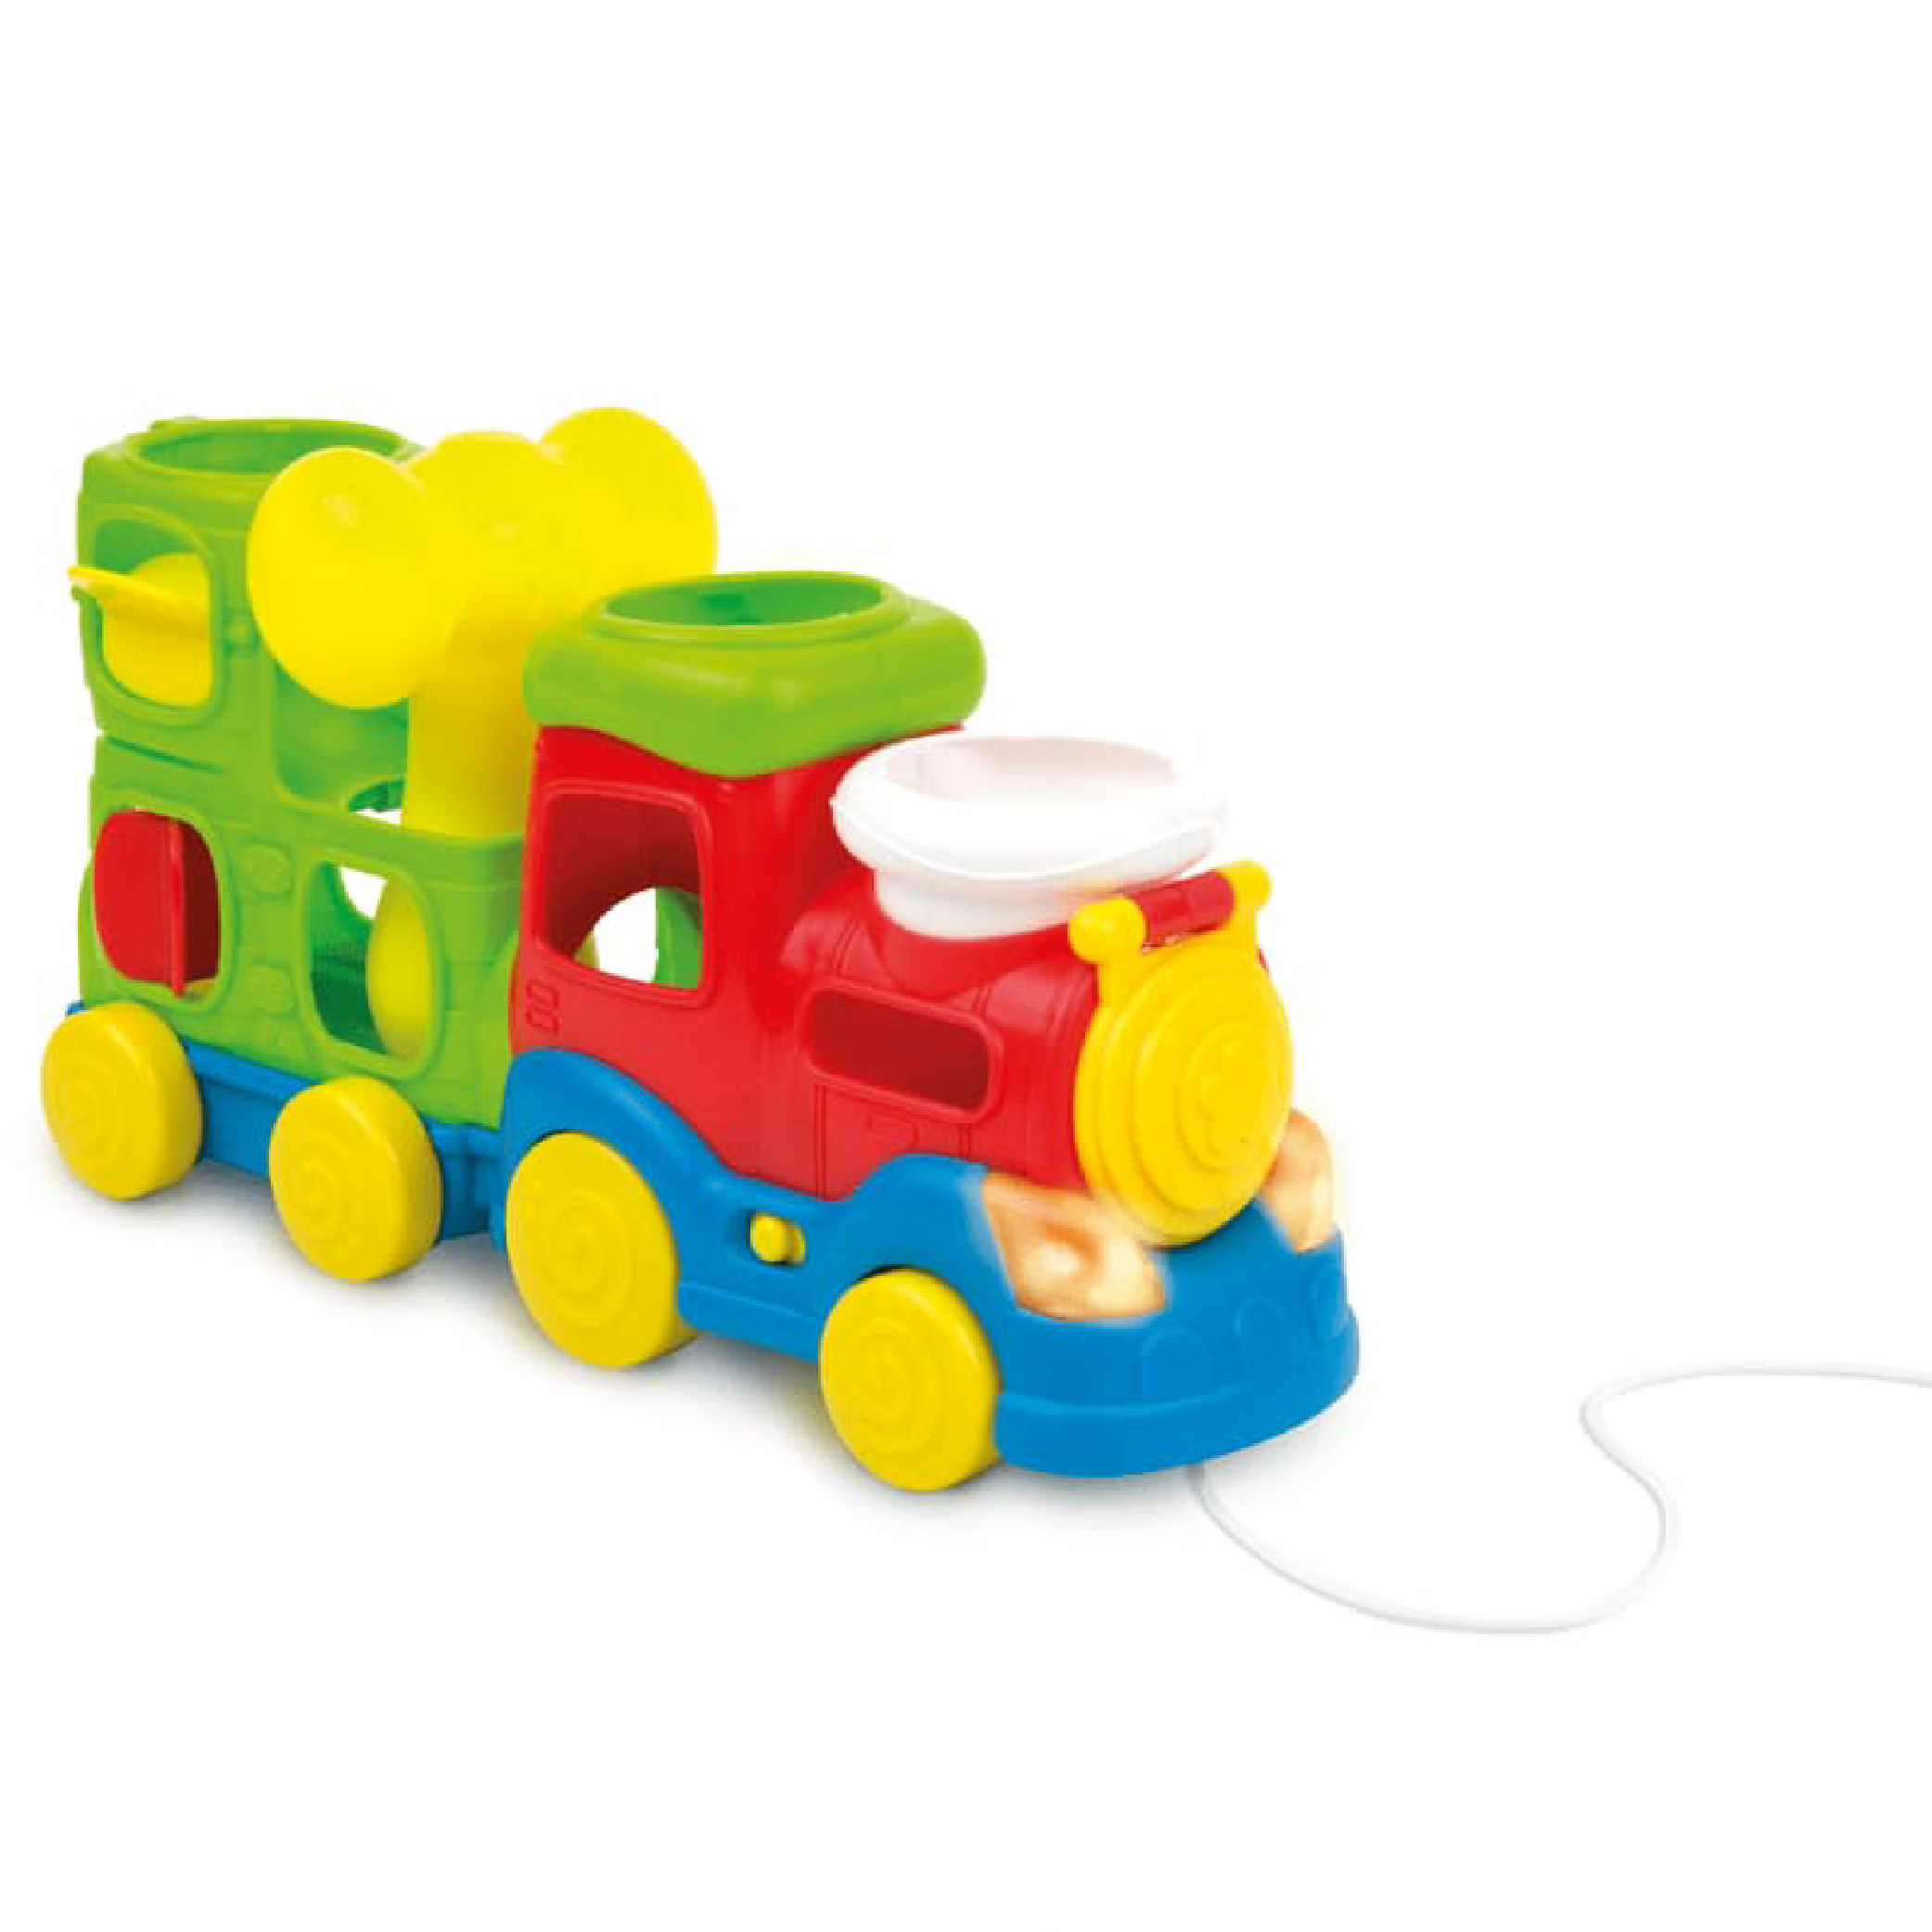 Lot 209_Winfun Pound N Play Train-1